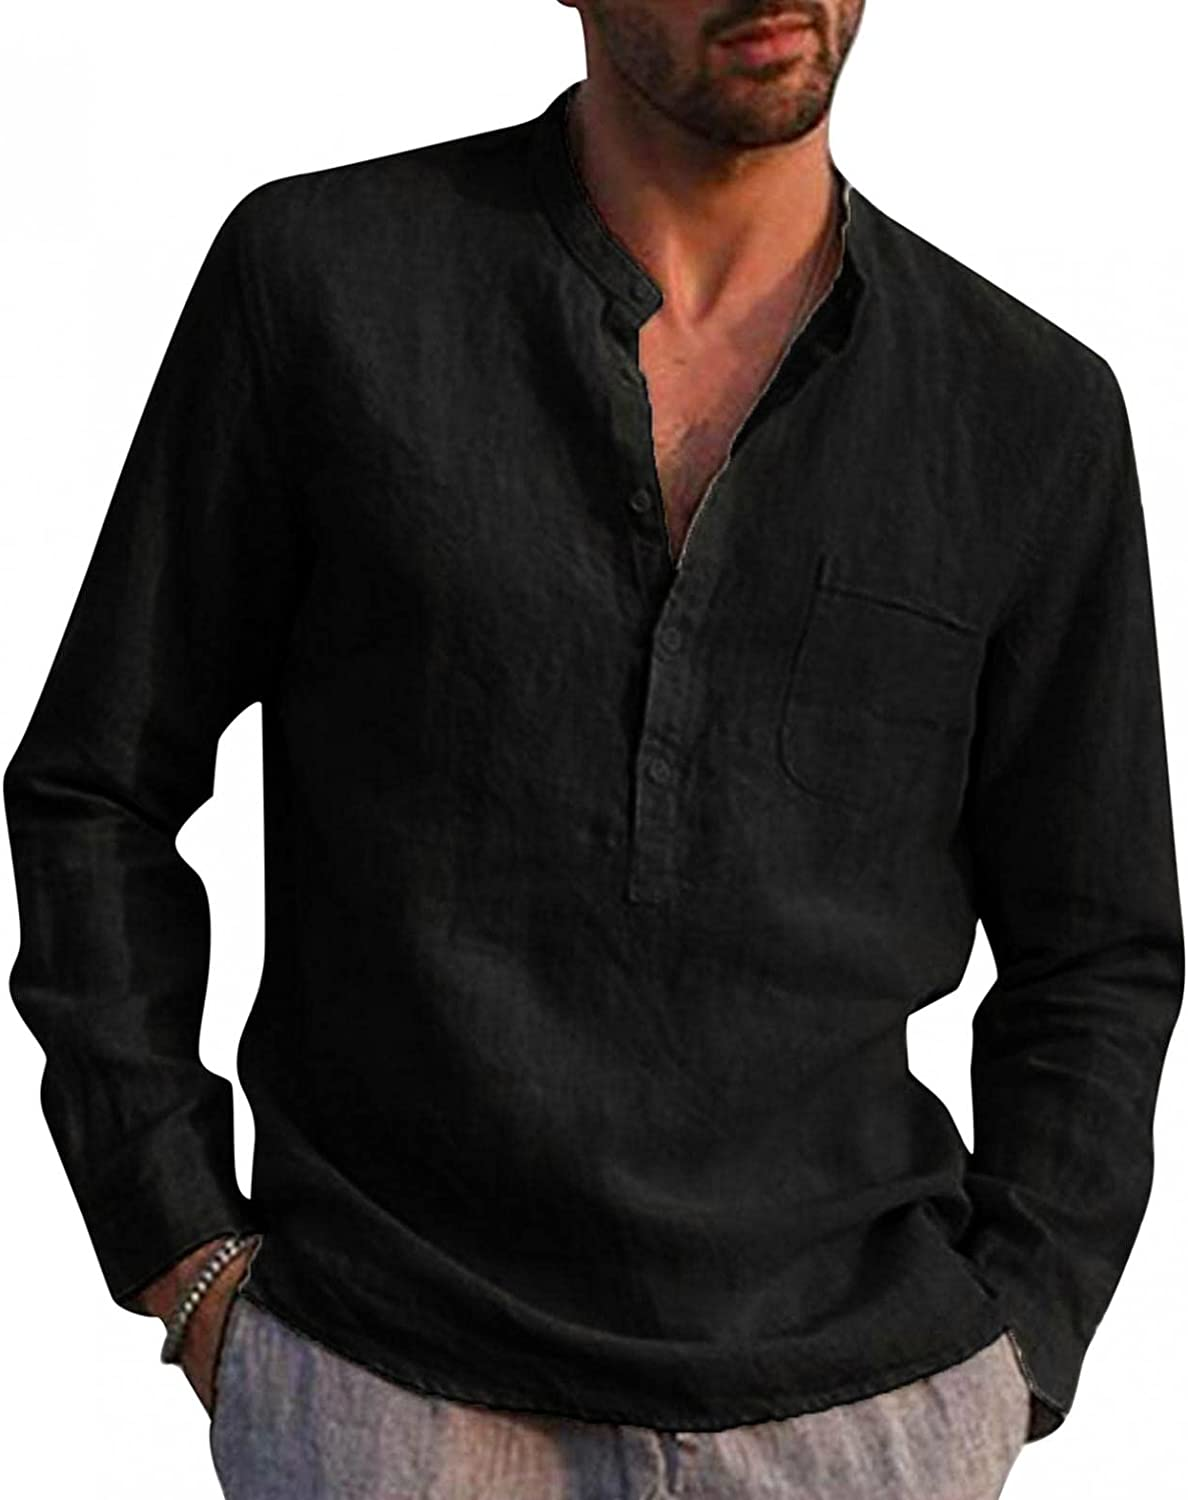 KEEYO Mens Cotton Linen Henley Shirts Long Sleeve Hippie Casual Beach Solid Color Yoga T-Shirts Stand Collar Plain Tee Tops